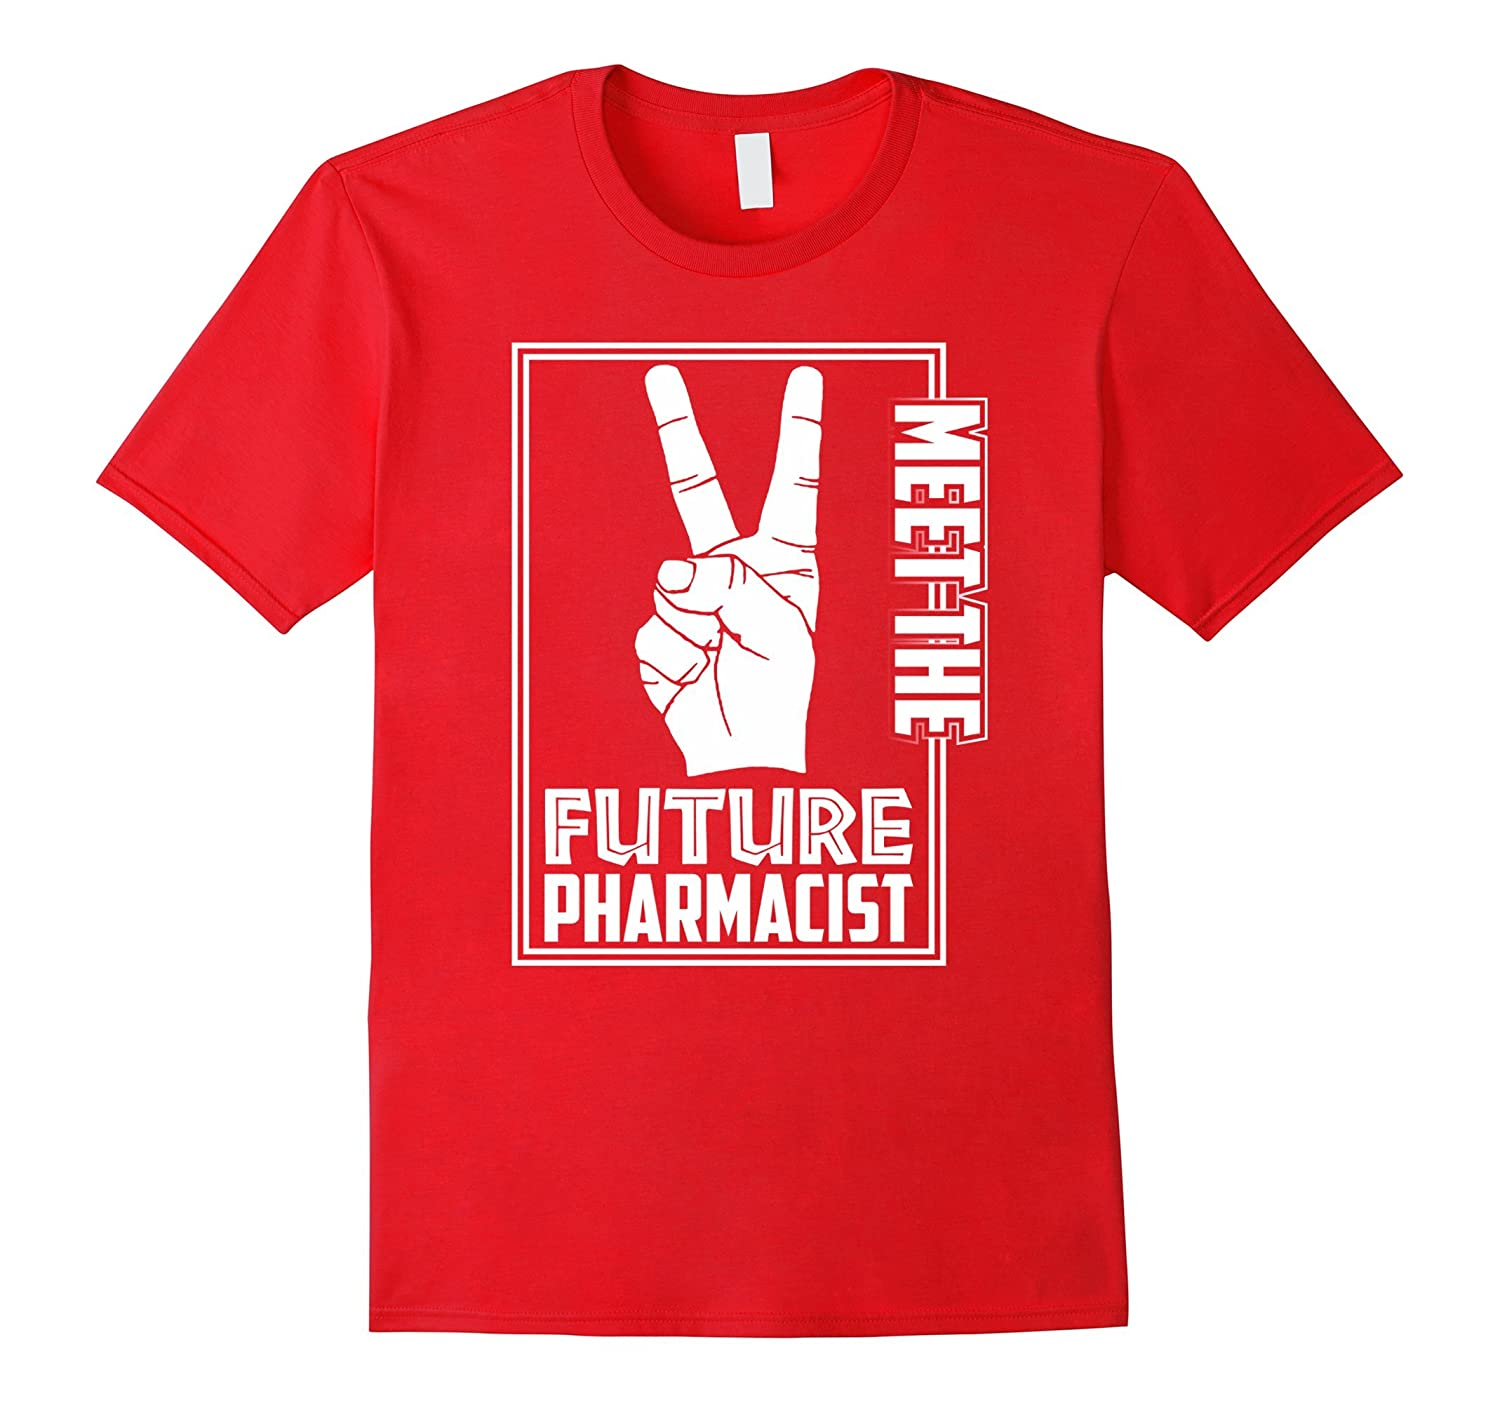 Meet the Future Pharmacist, T-Shirt for Pharmacists-TH